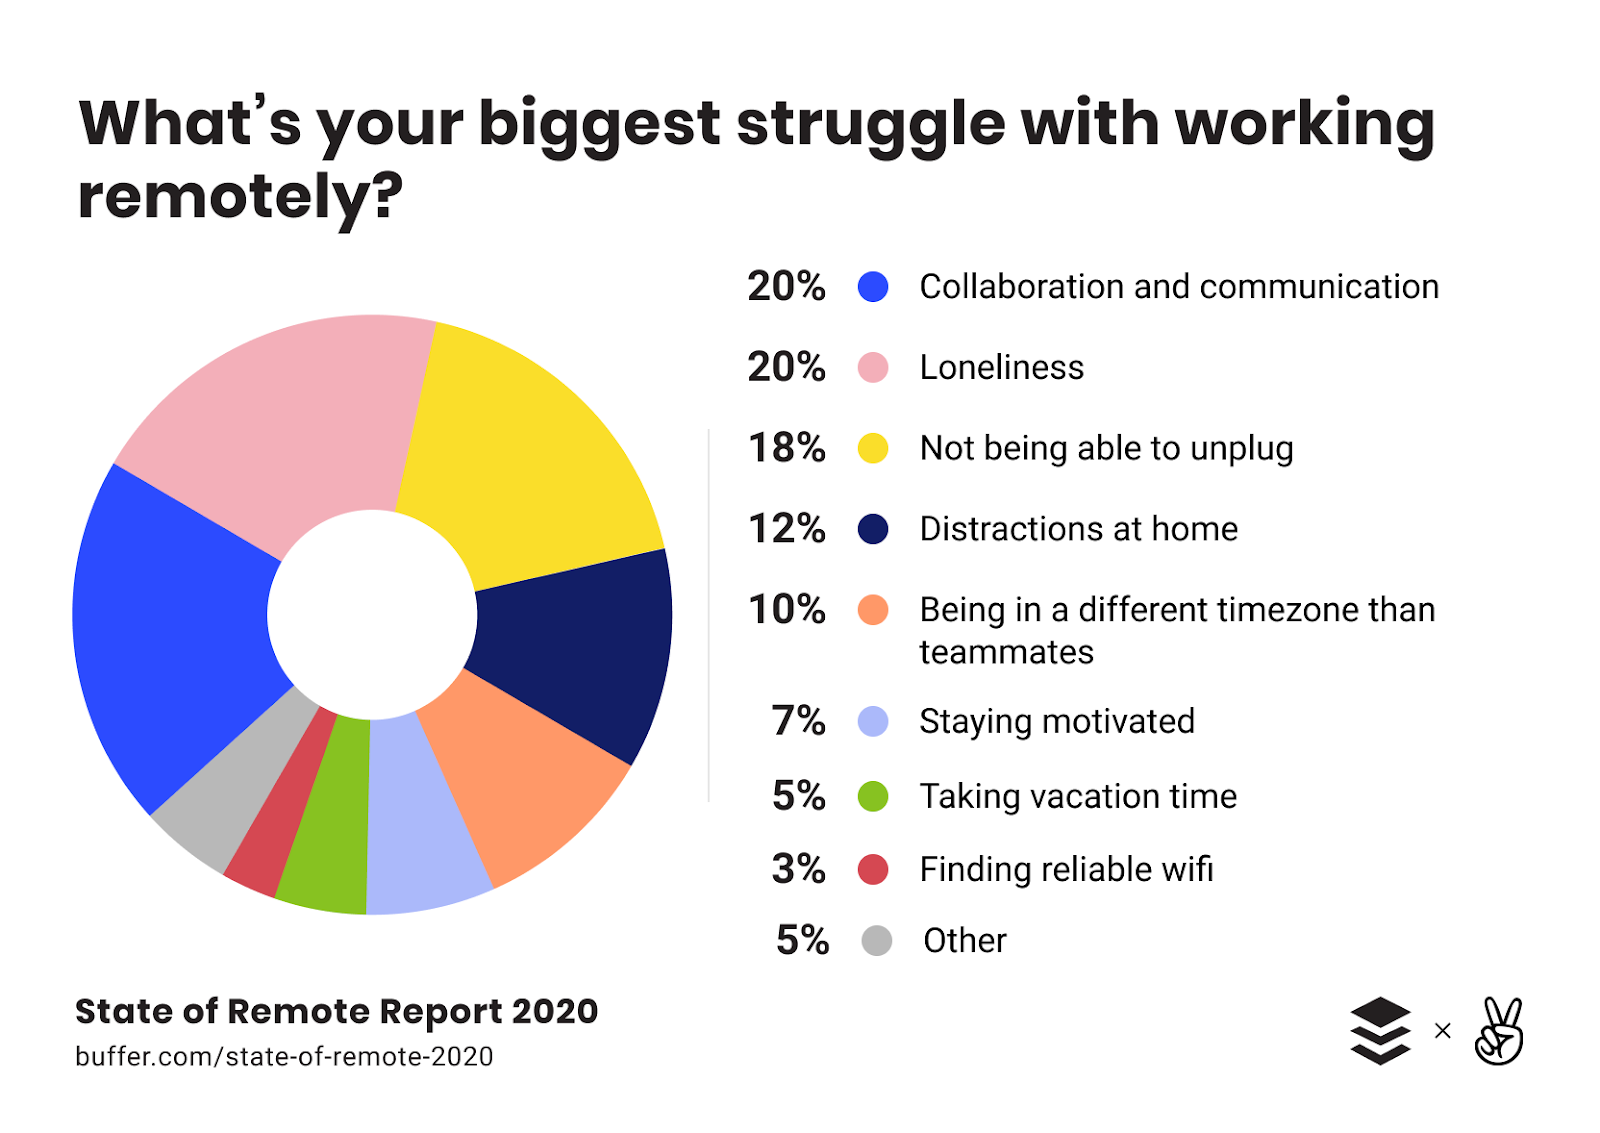 5 Tips to Encourage Effective Teamwork While Remote